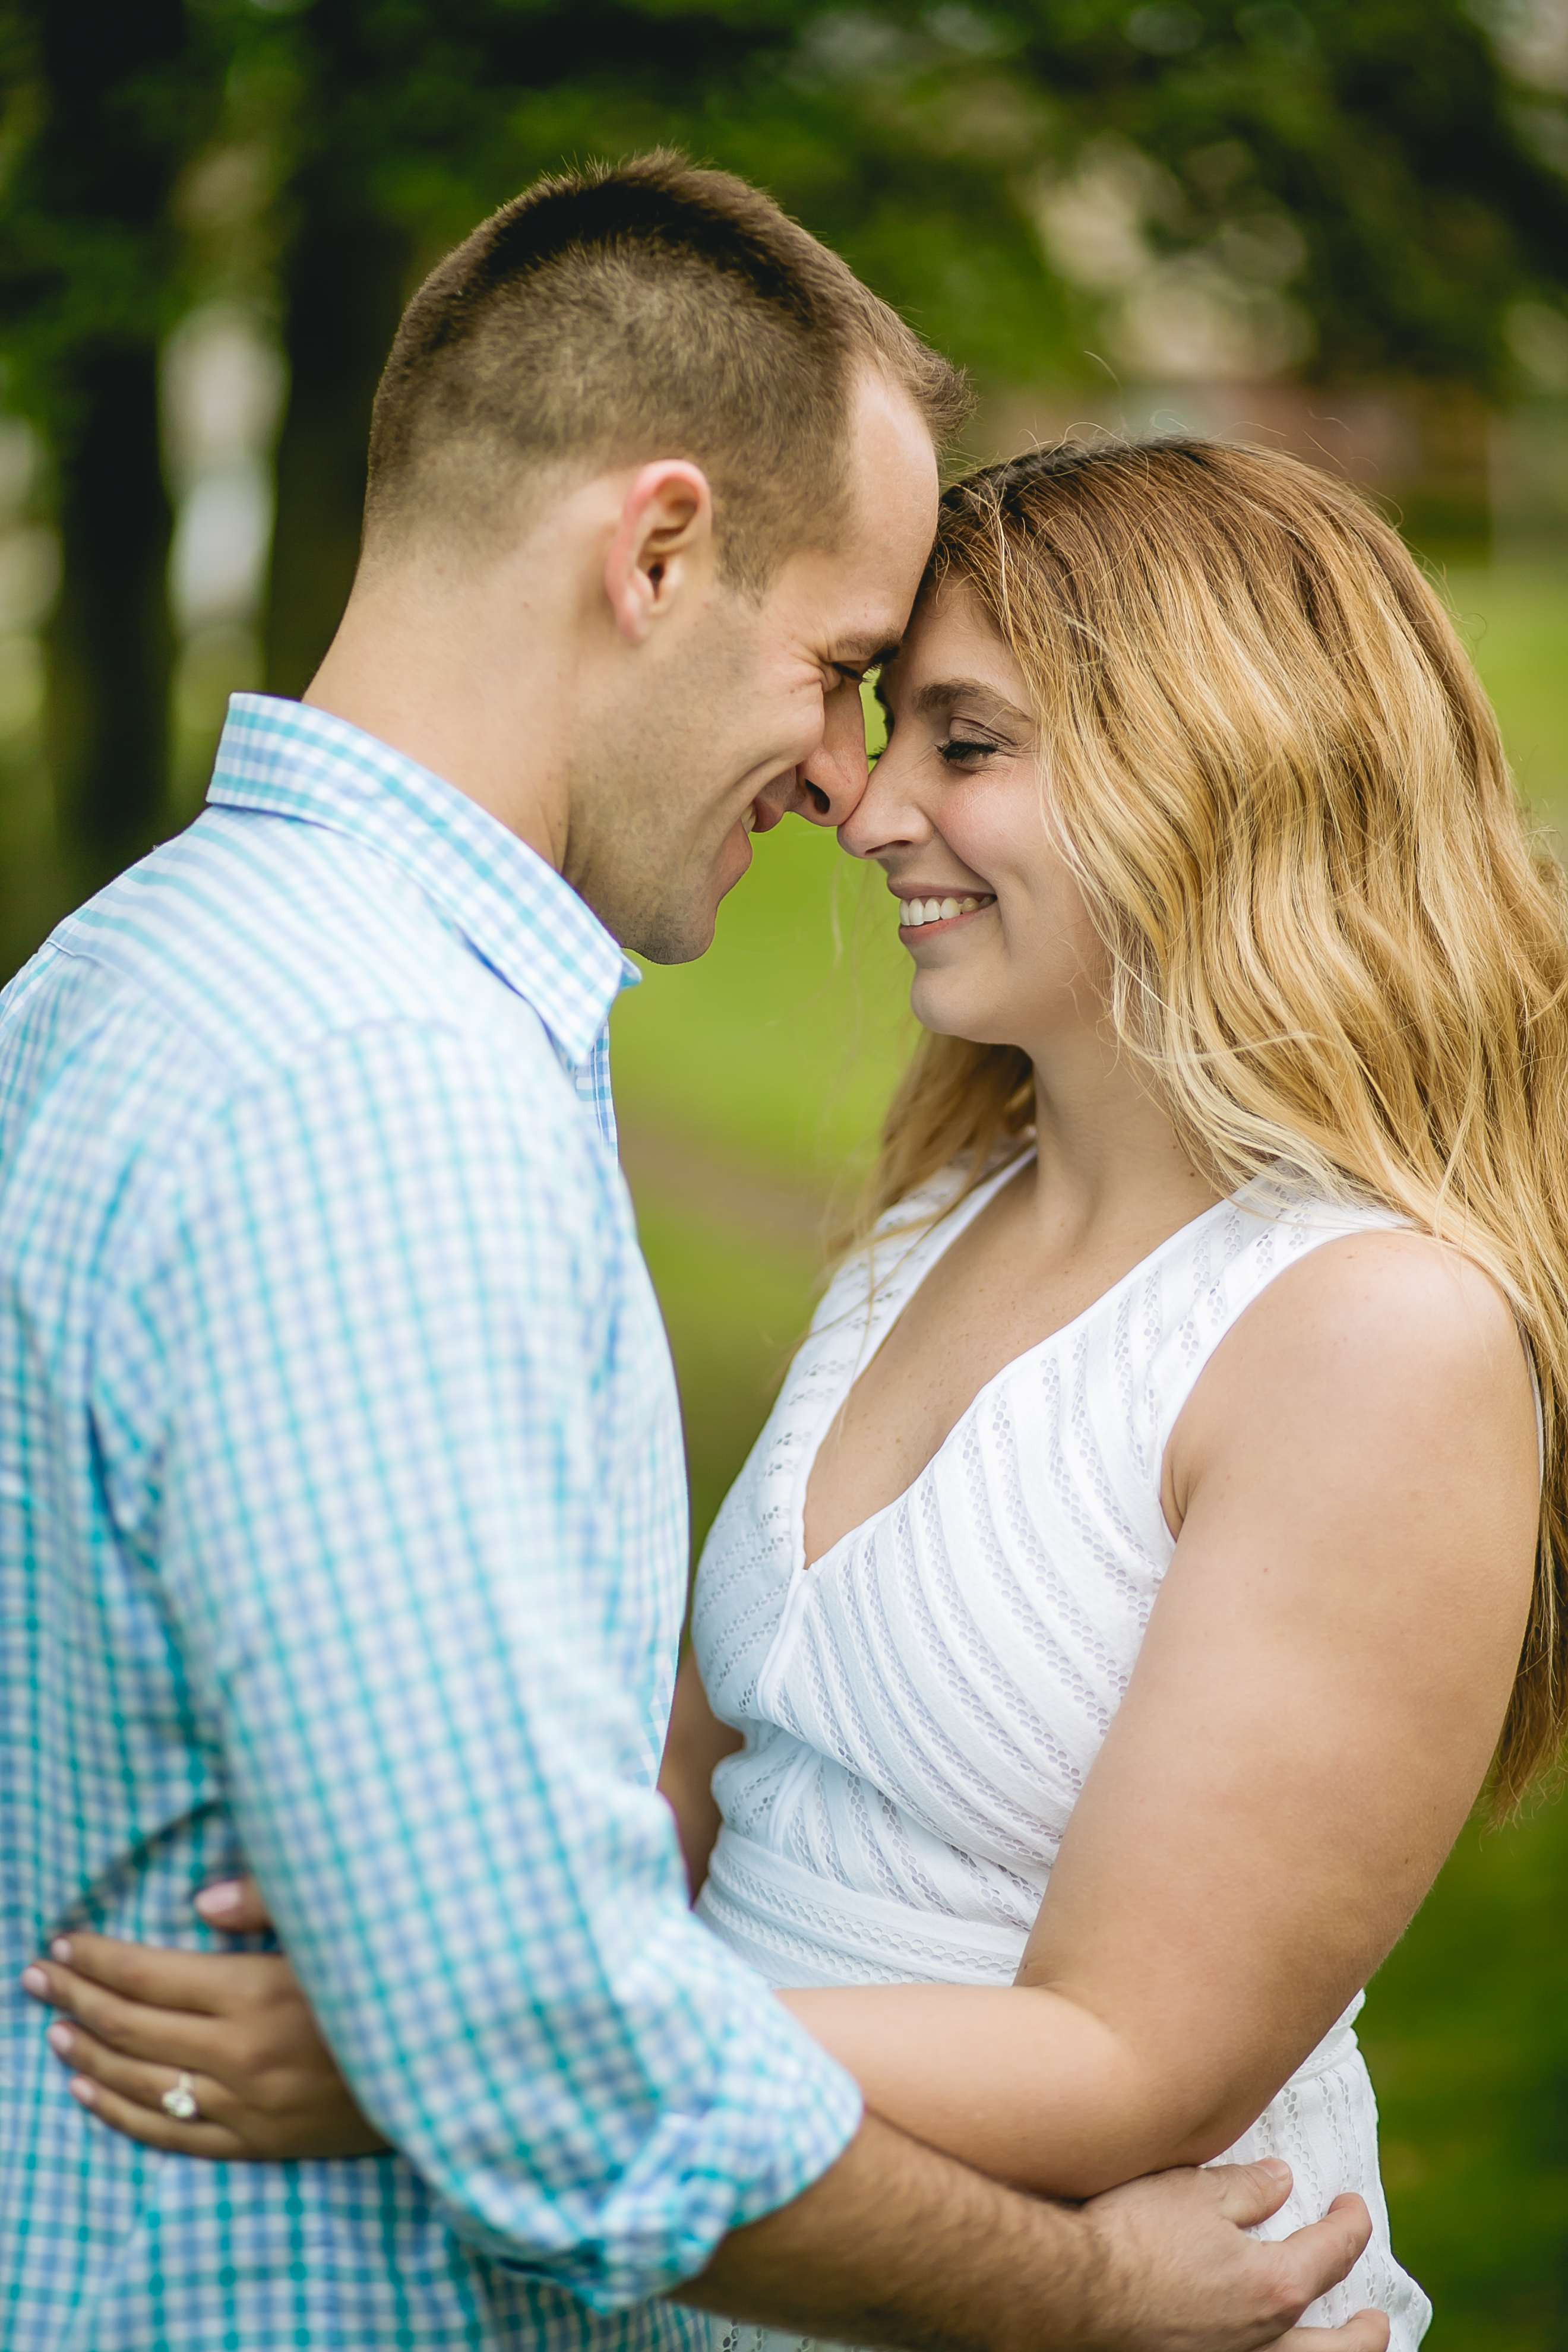 Our bride and groom picked a special place for their engagement session. Check out this blog and read why engagement sessions are important and how to make them great!